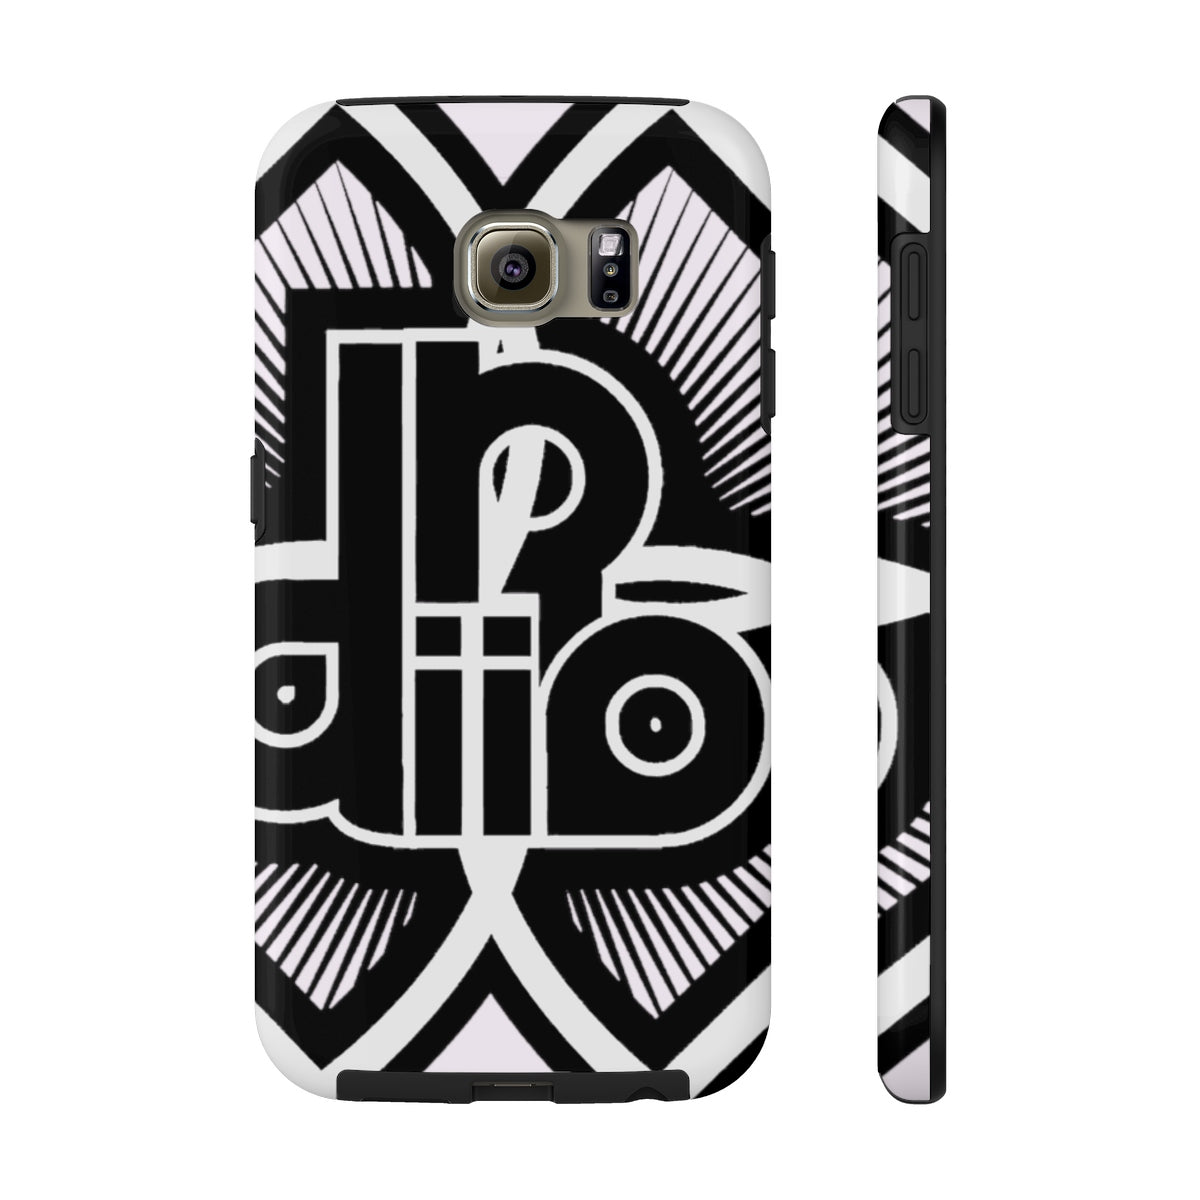 DDIIRO Case Mate Tough Phone Cases